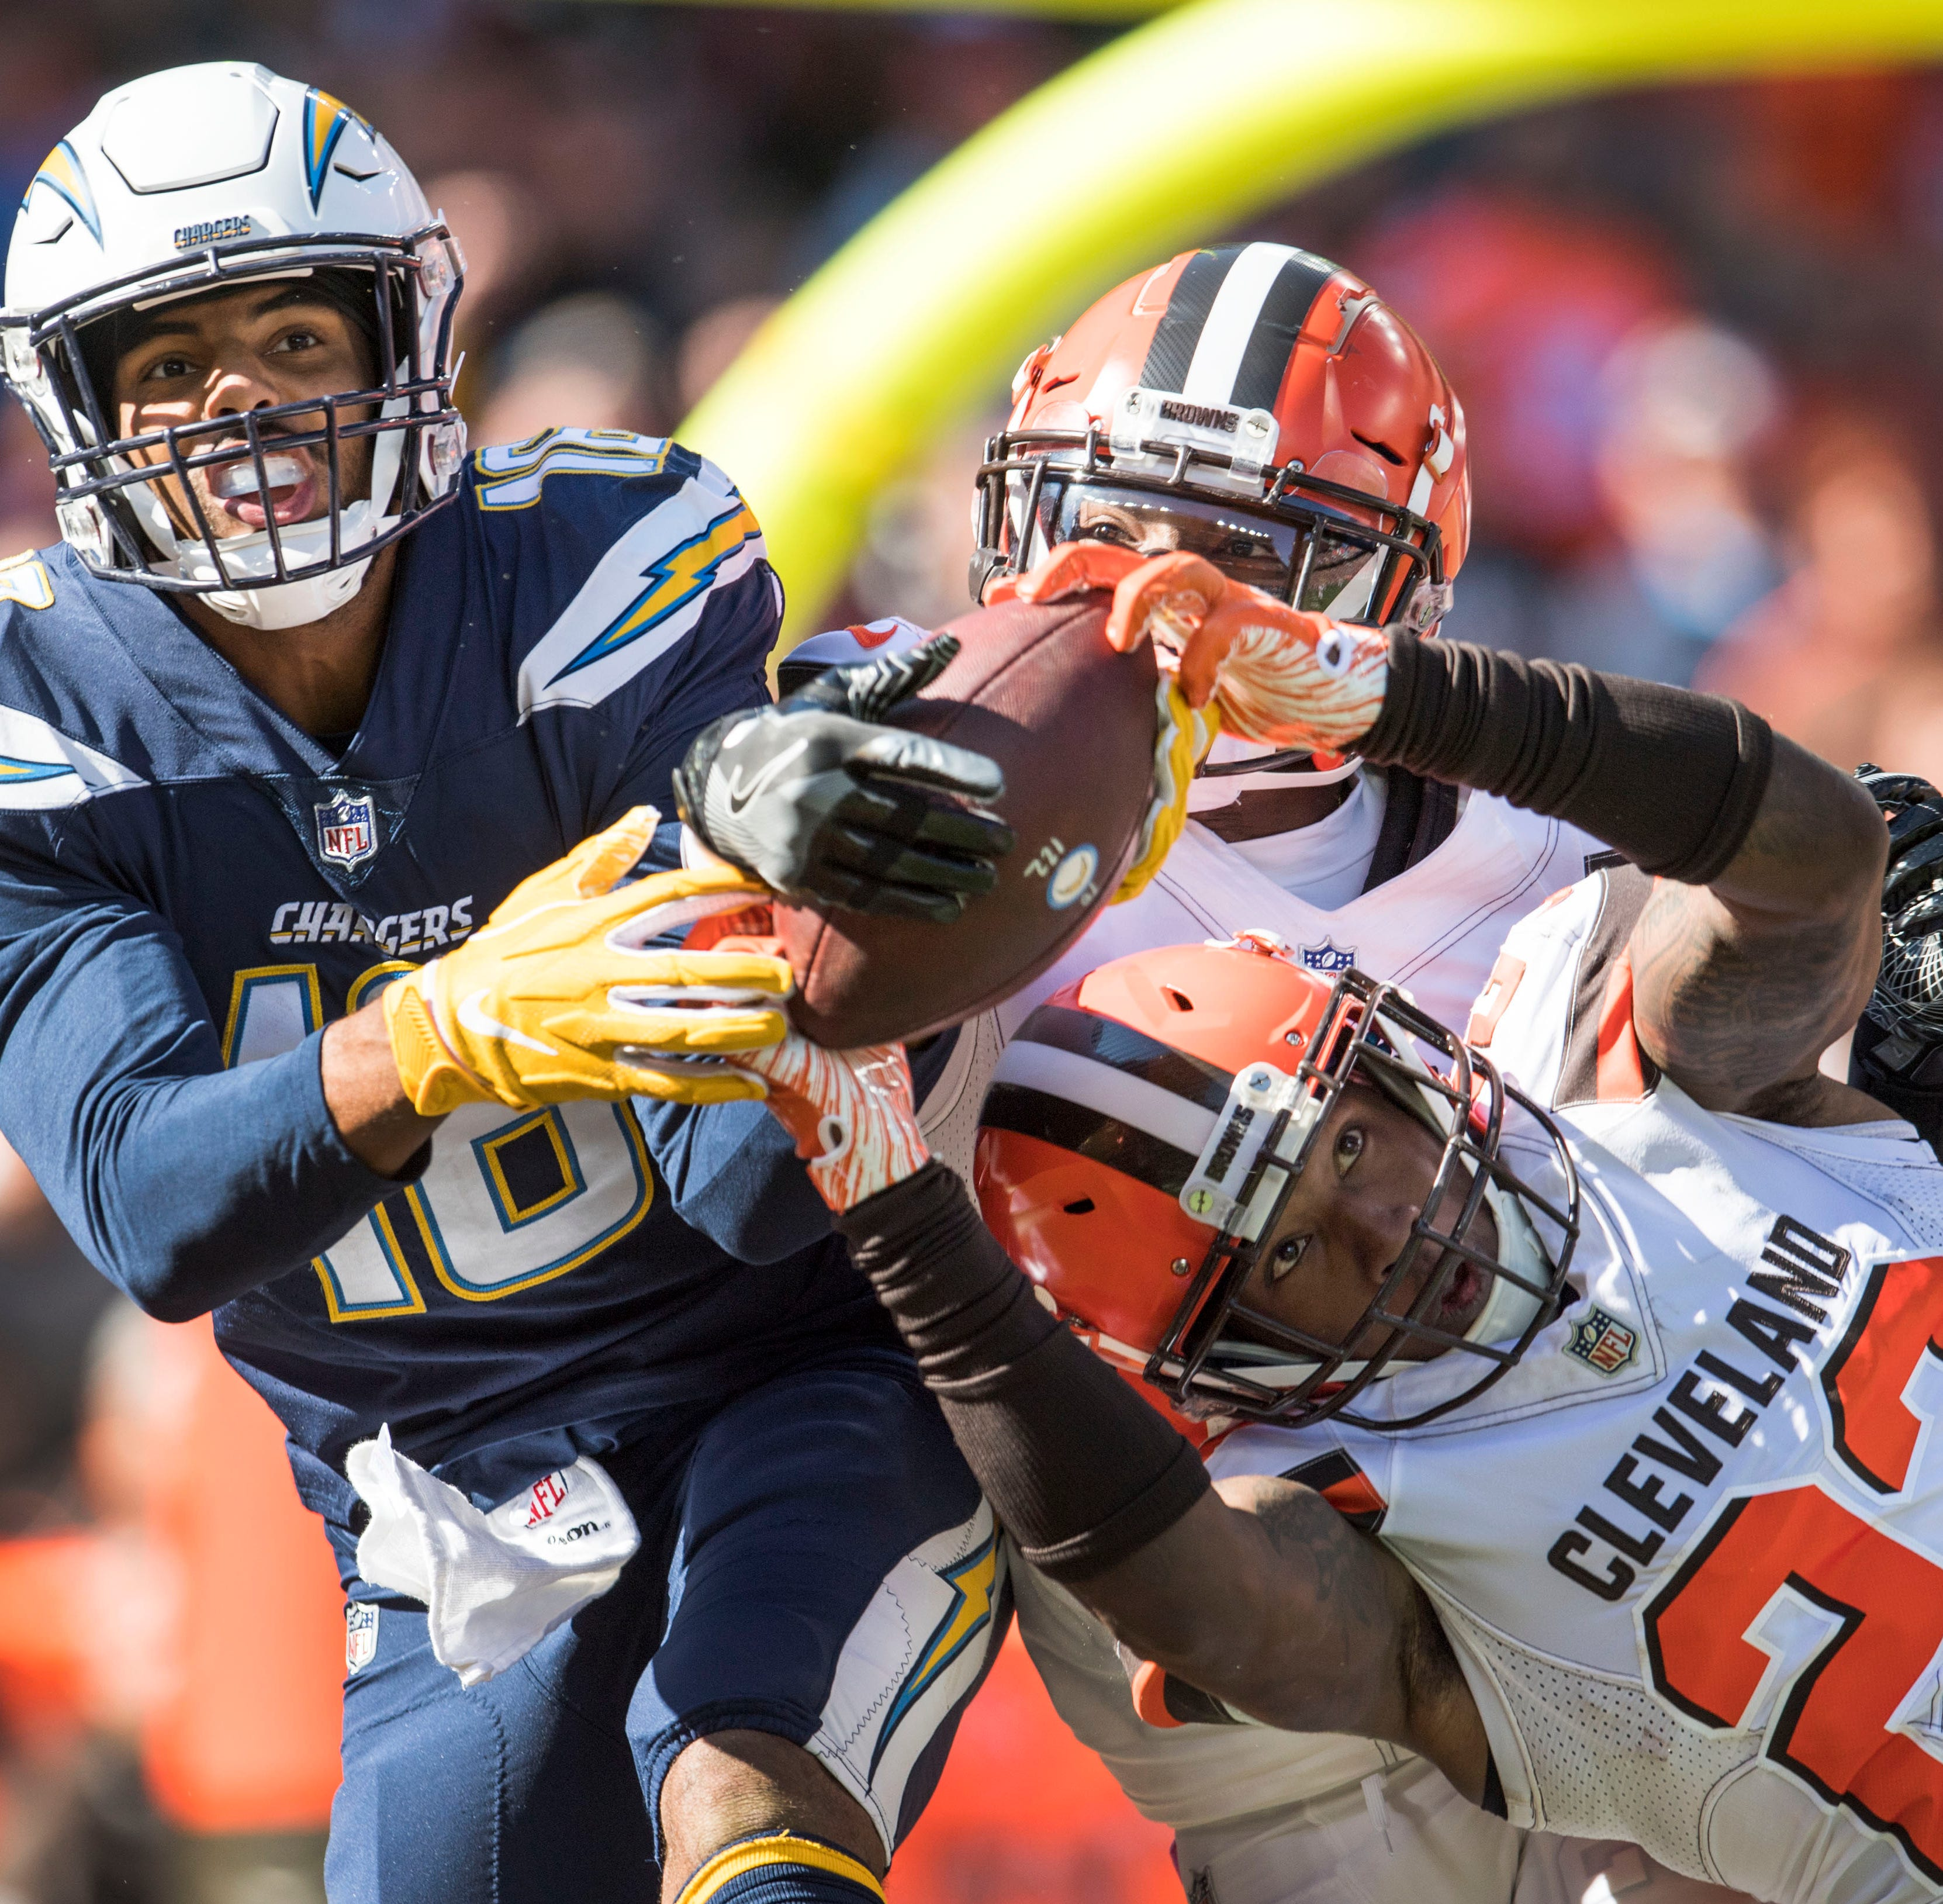 Cascade grad Tyrell Williams with spectacular quarter for Los Angeles Chargers